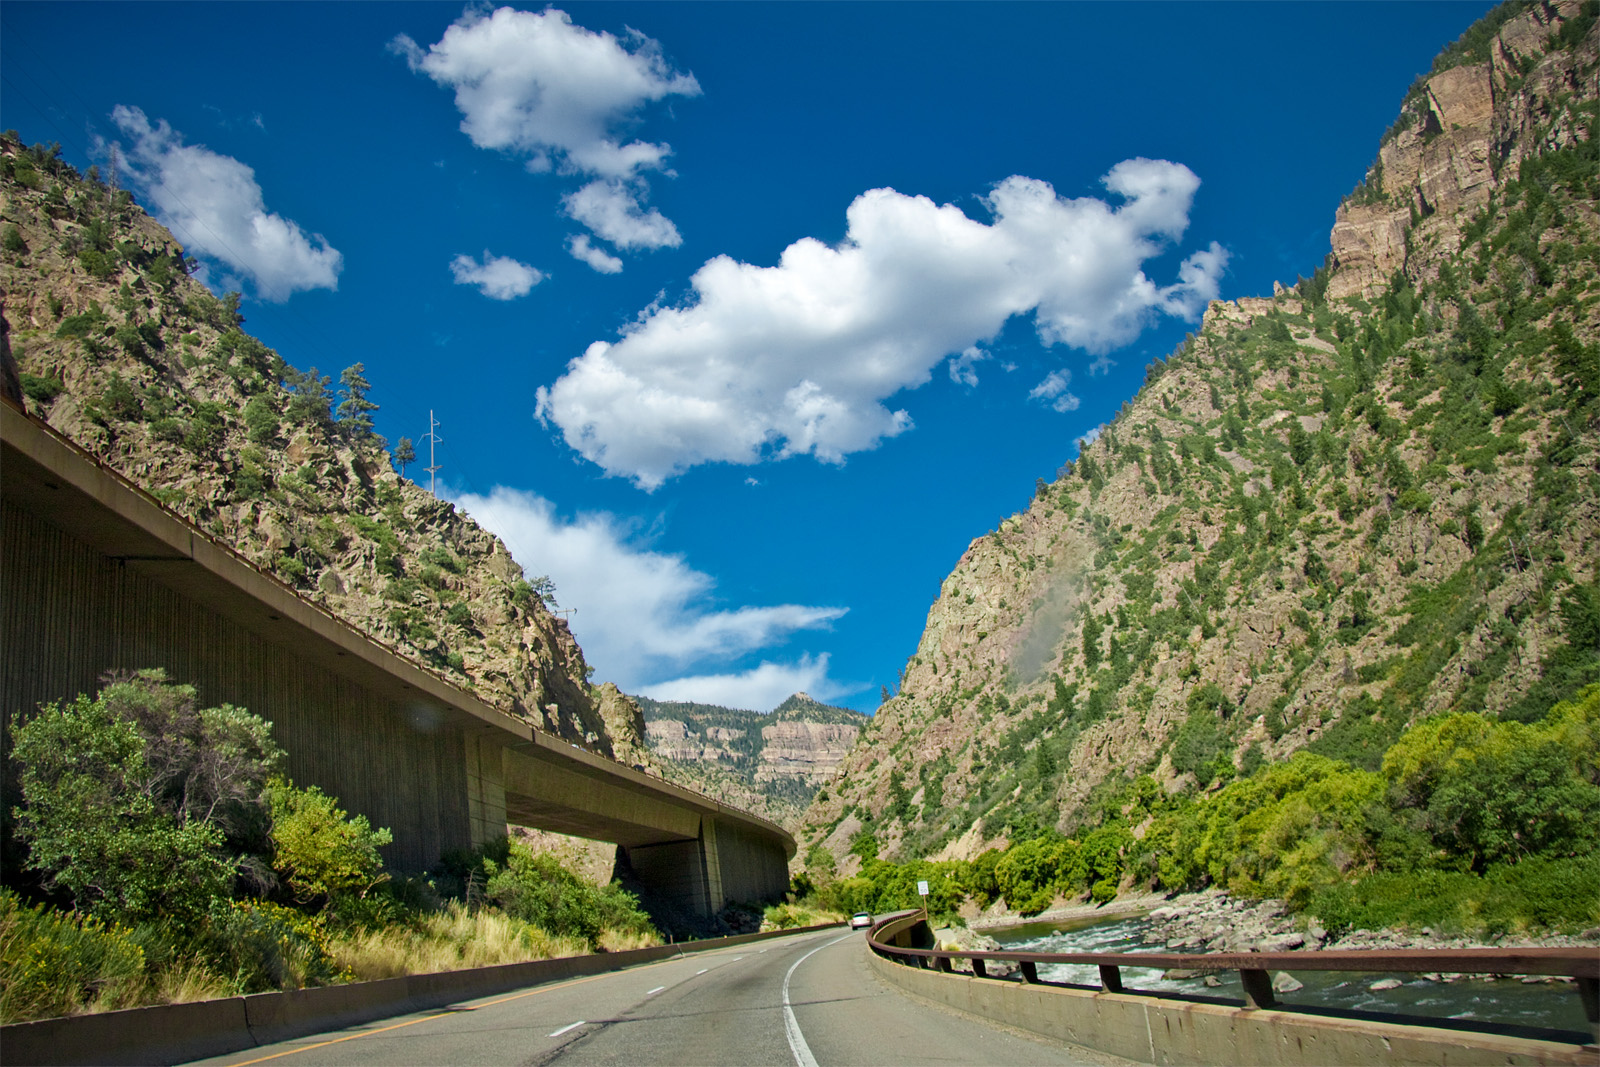 http://upload.wikimedia.org/wikipedia/commons/6/62/I-70_Glenwood_Canyon-terabass.jpg